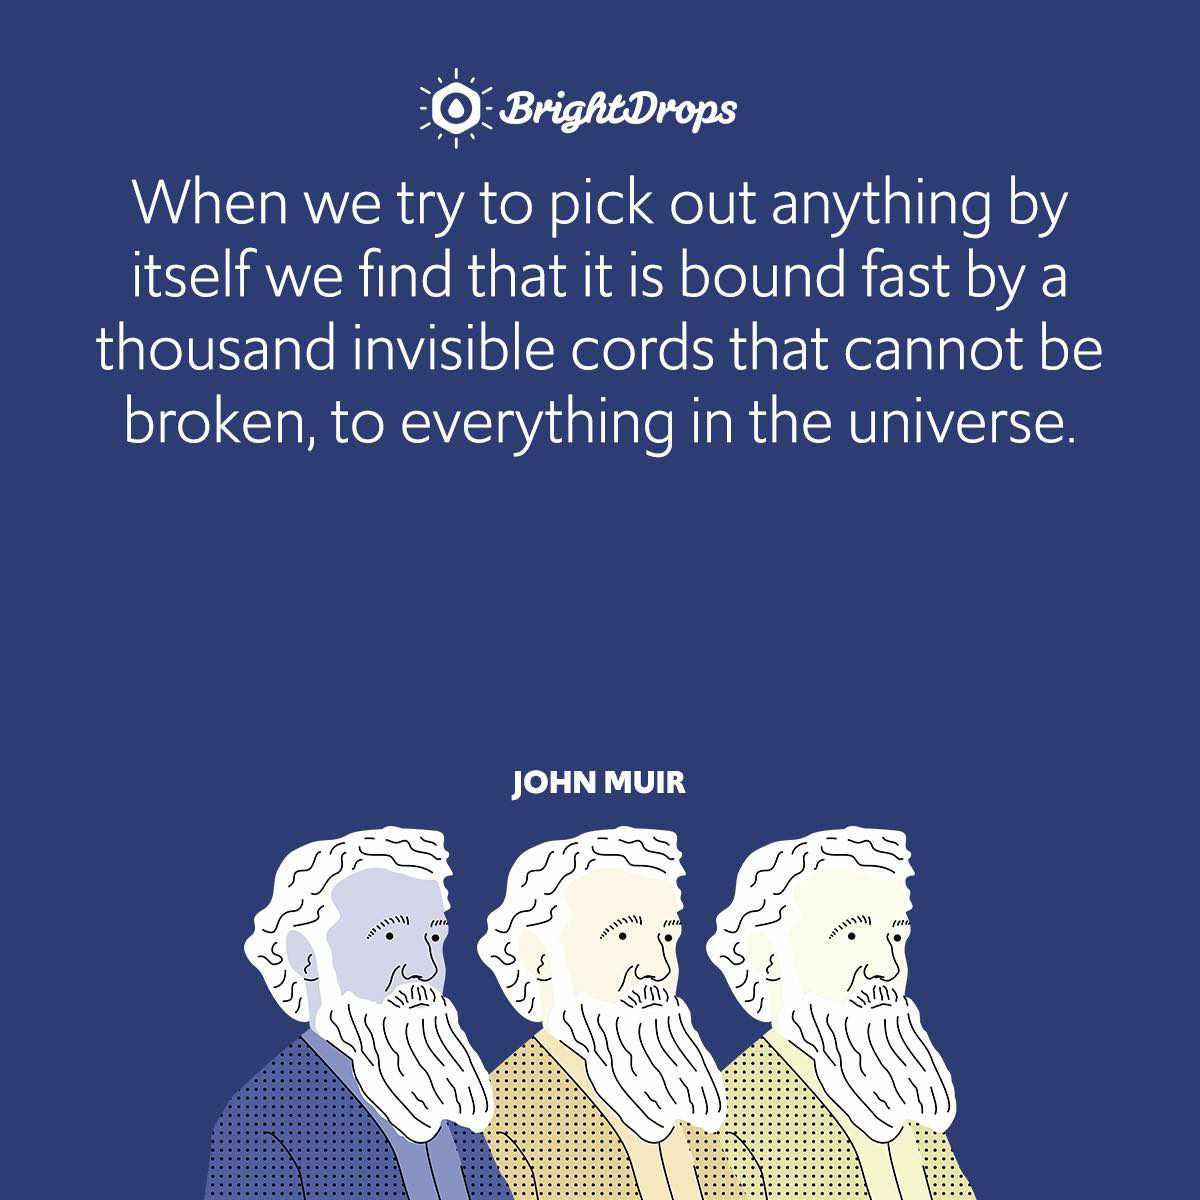 When we try to pick out anything by itself we find that it is bound fast by a thousand invisible cords that cannot be broken, to everything in the universe.